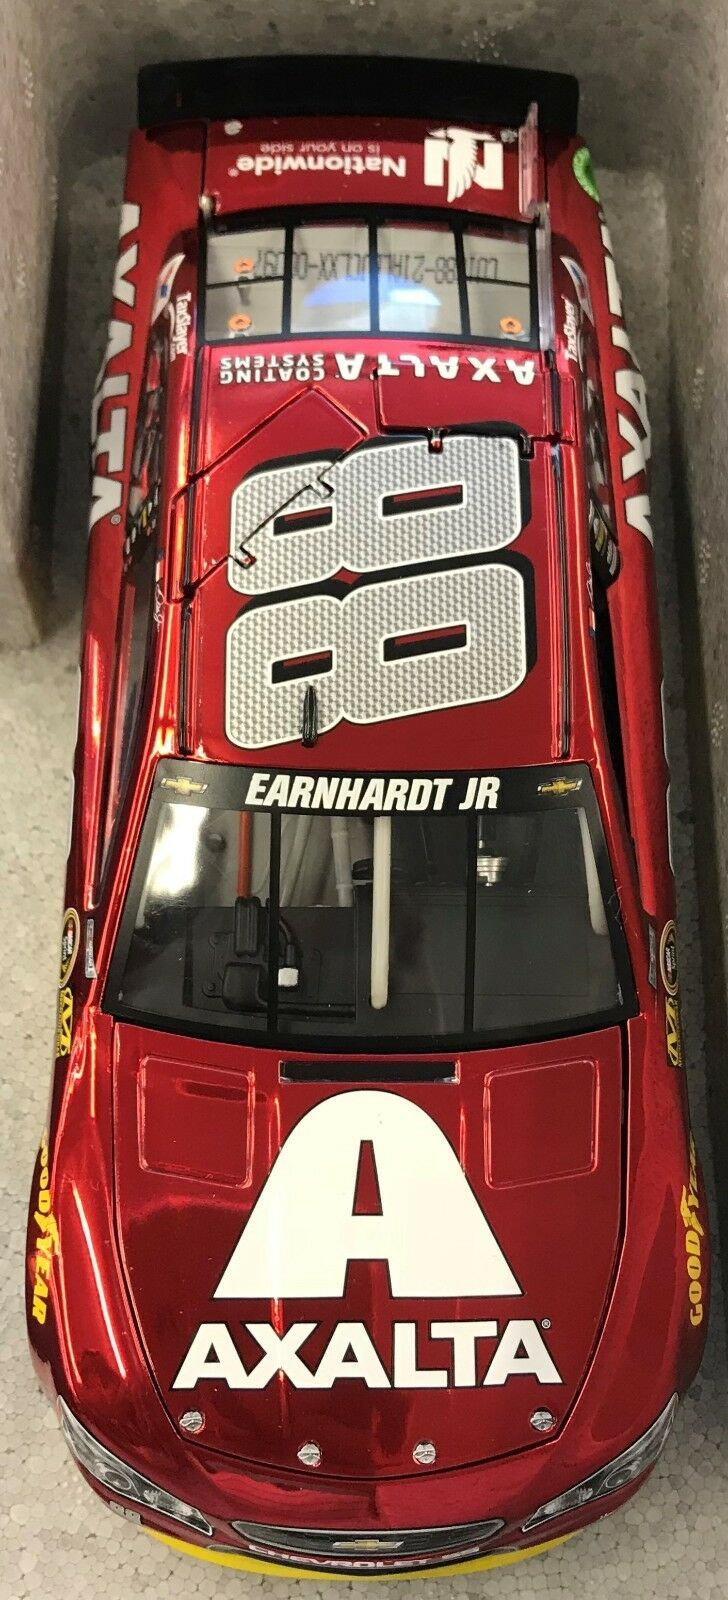 Dale Earnhardt Jr. - 2016 1 24 Axalta color Chrome (216)